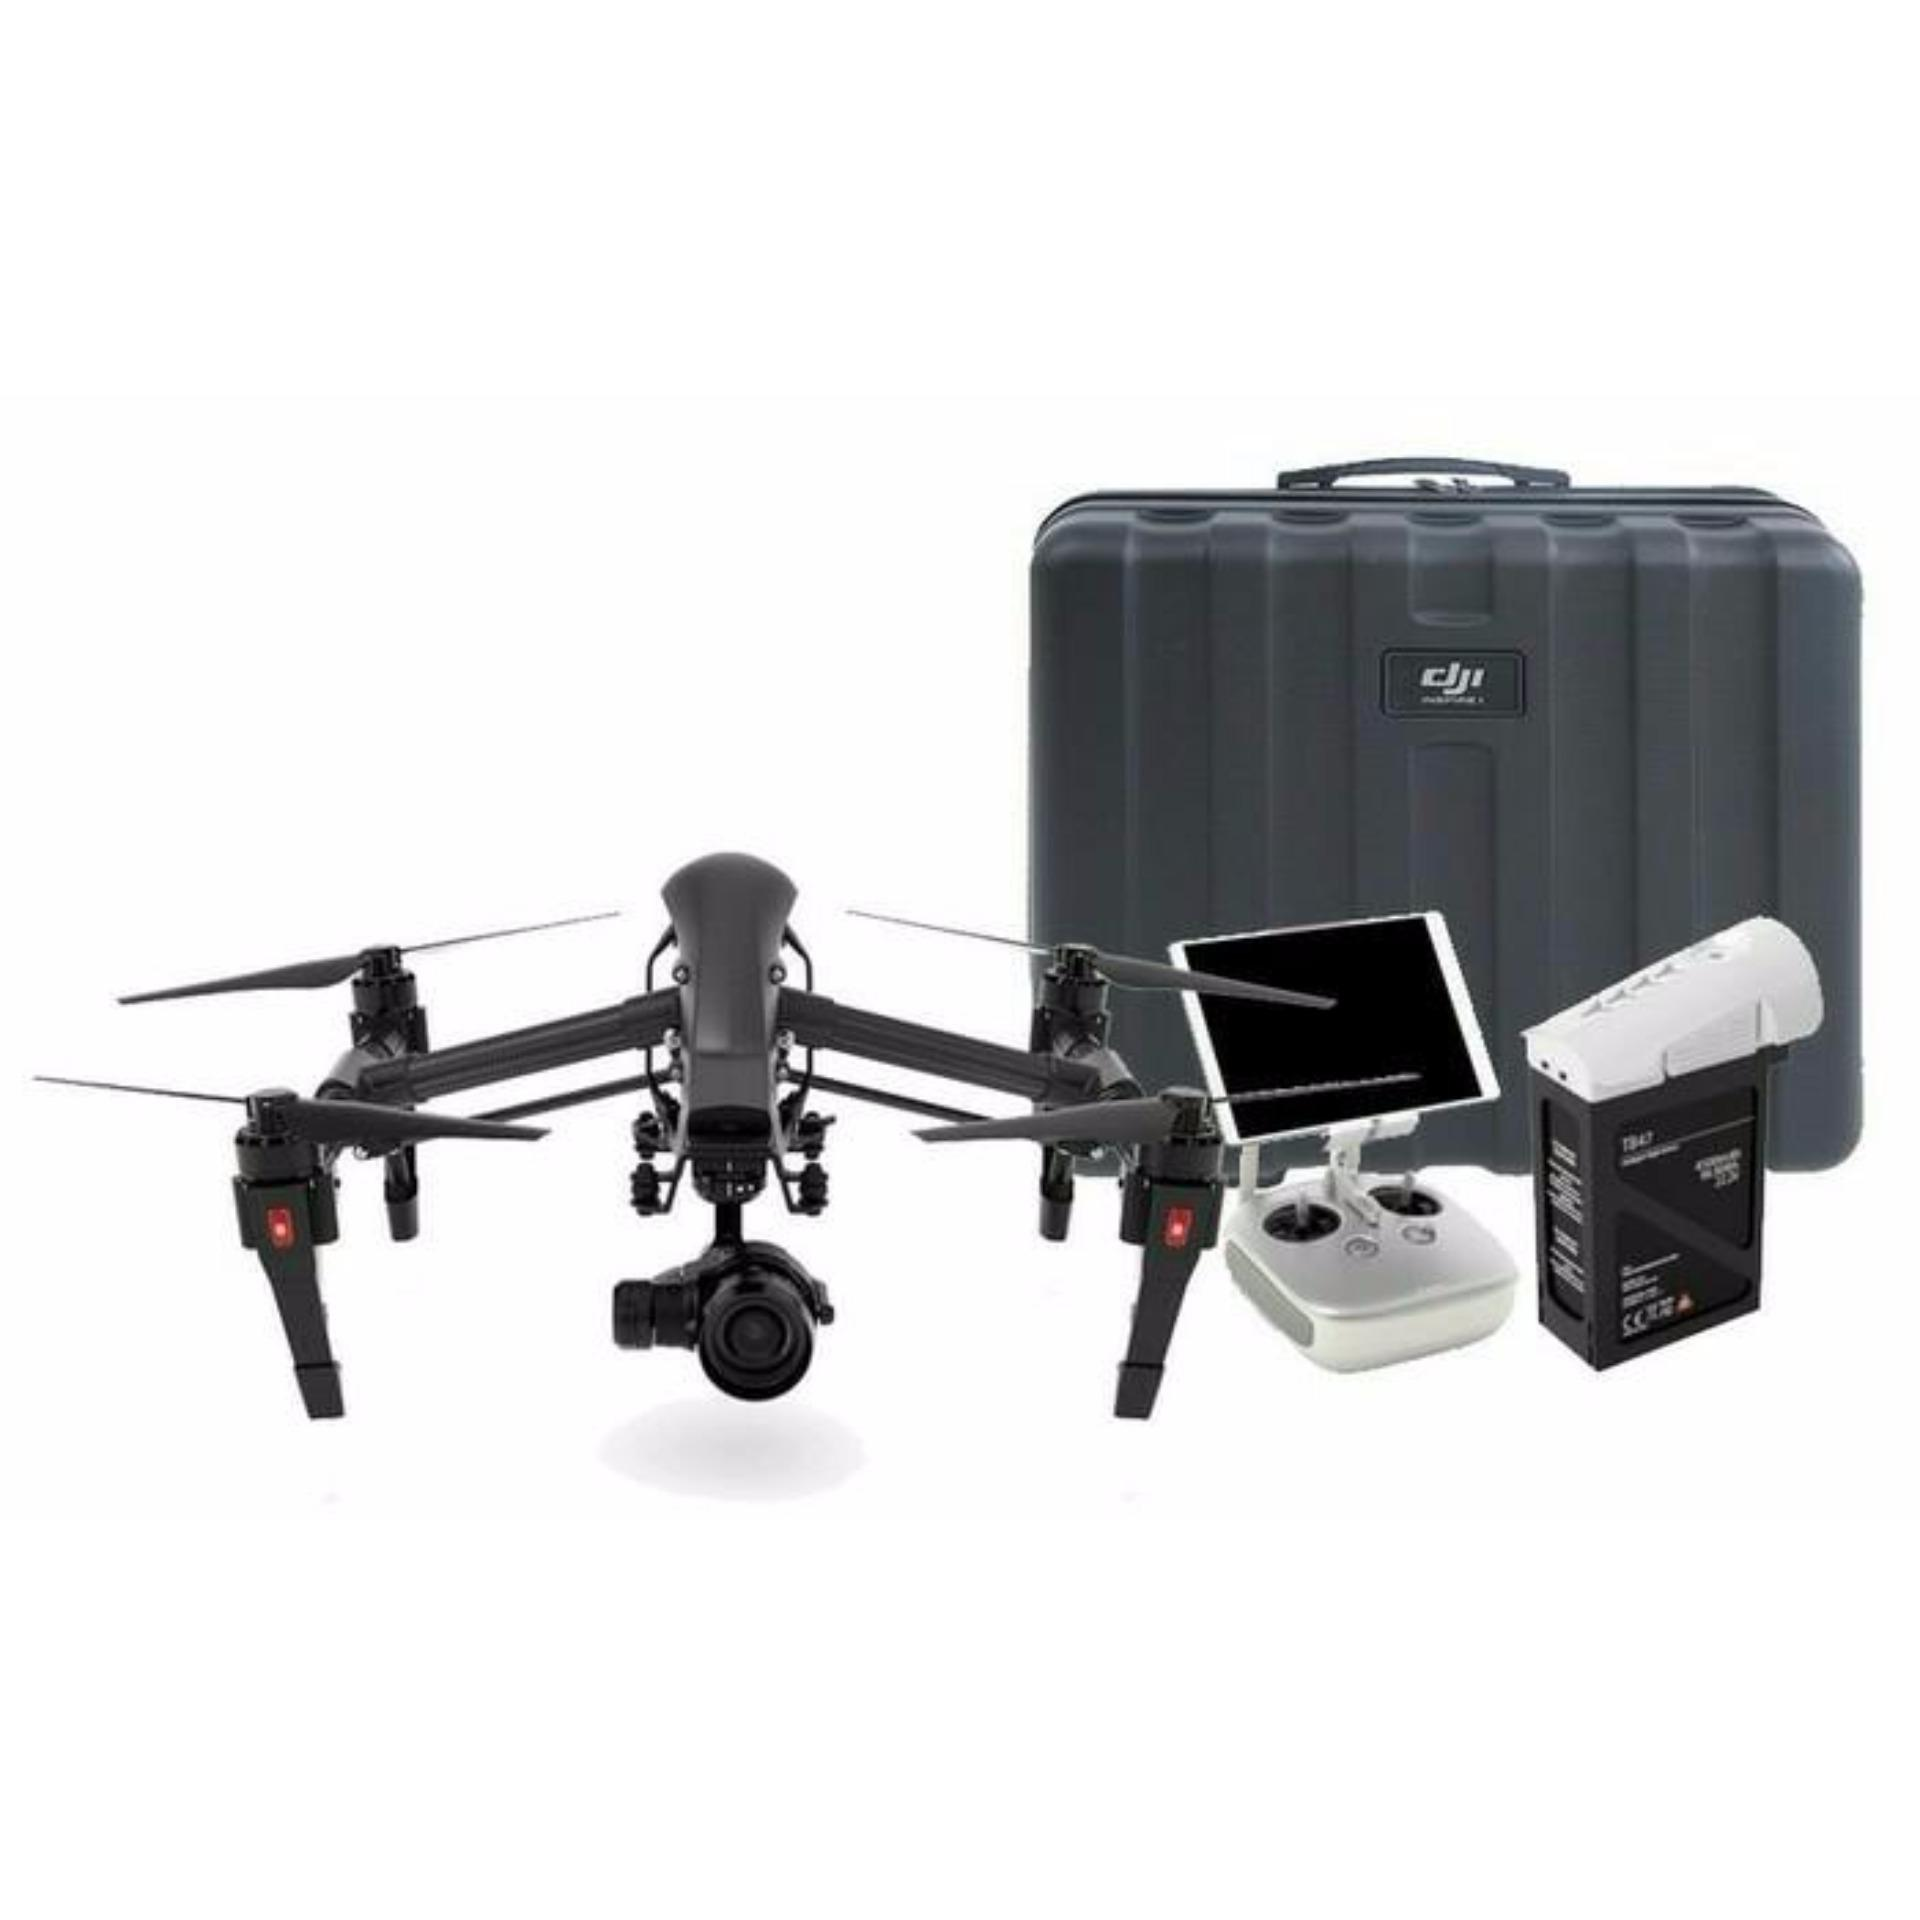 Eshop Checker Dji Inspire 1 Pro Black Edition Quadcopter With Zenmuse X5 4k 3 Axis Professional 4kcamera And Gimbal